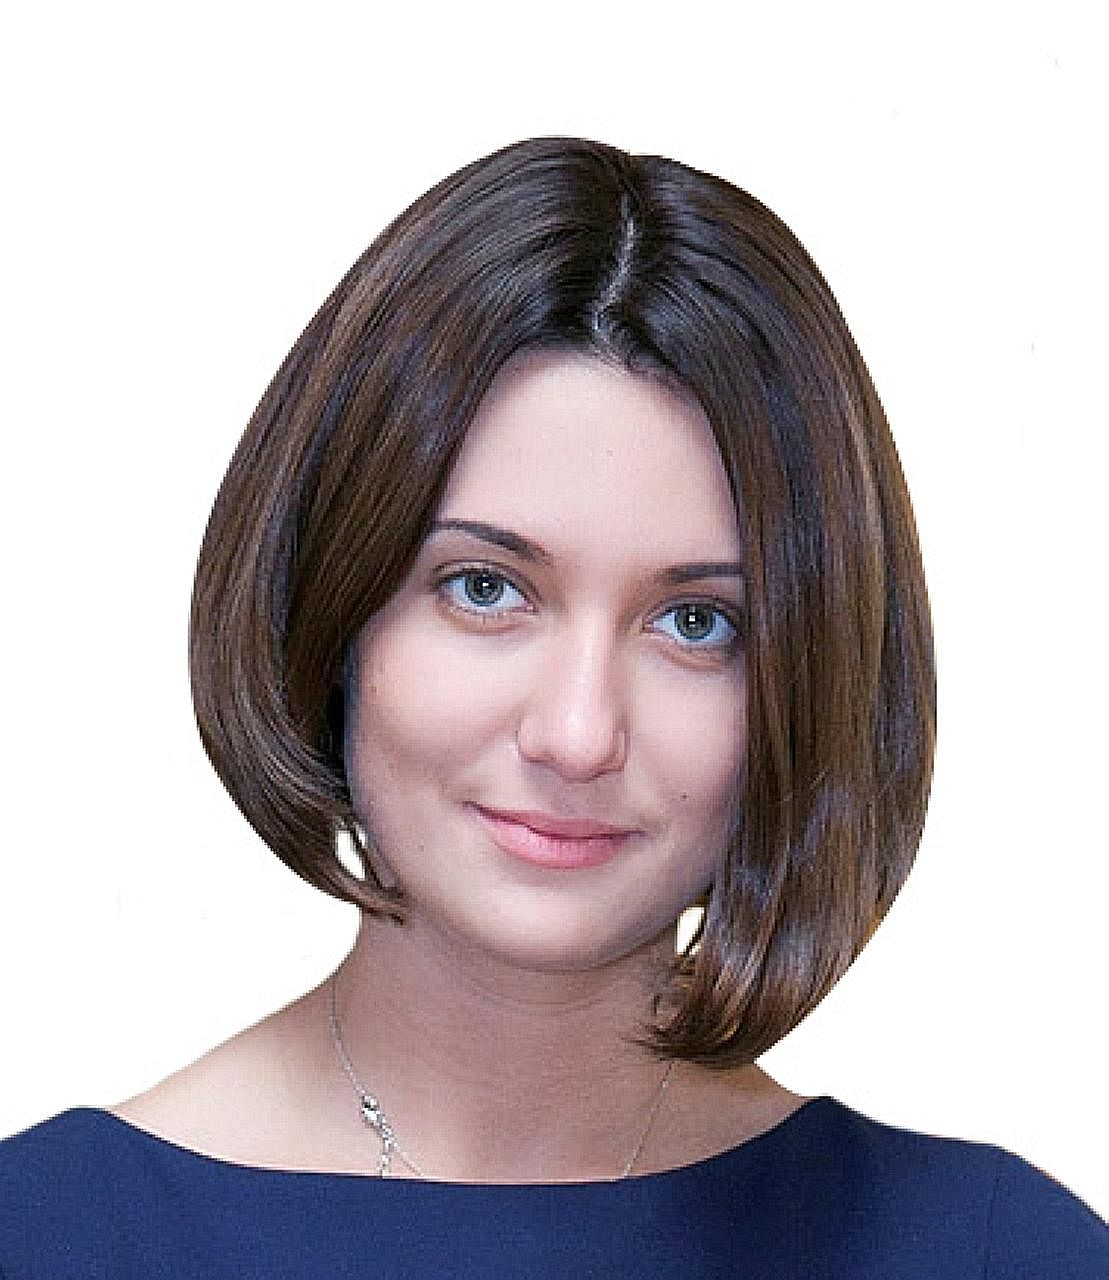 Ms Alena Salakhova (above), Singapore regional director at recruitment firm Hudson, which carried out the study involving 3,500 employers and employees in Asia, said employers were looking for candidates who can influence effectively, and who are ada